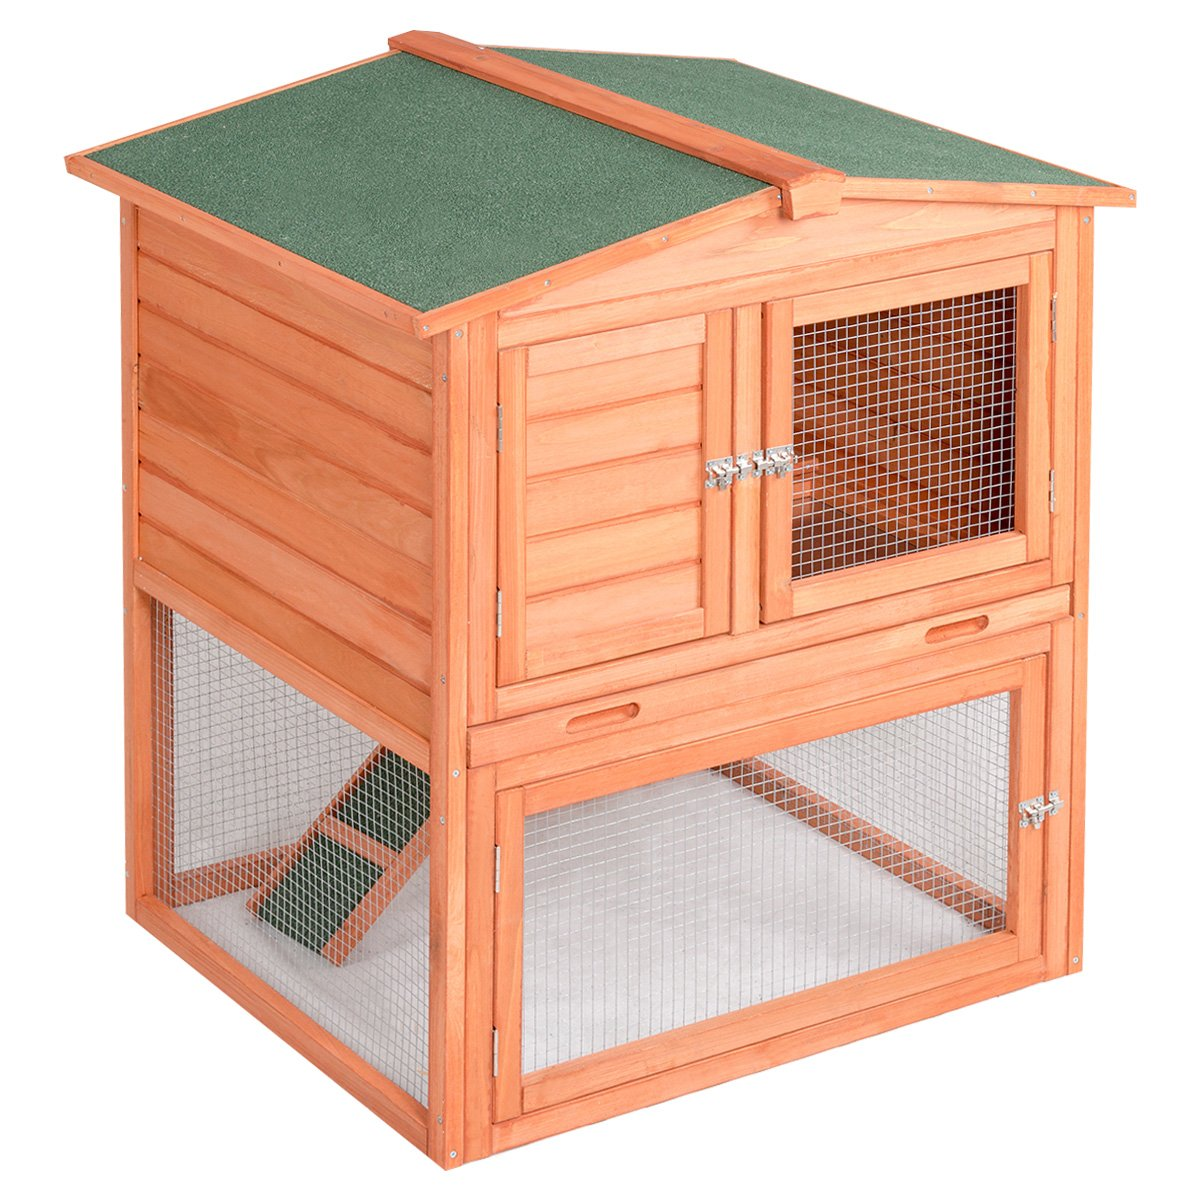 Tangkula Chicken Coop Wooden Garden Backyard Bunny Small Animal Hen Cage Rabbit Hutch